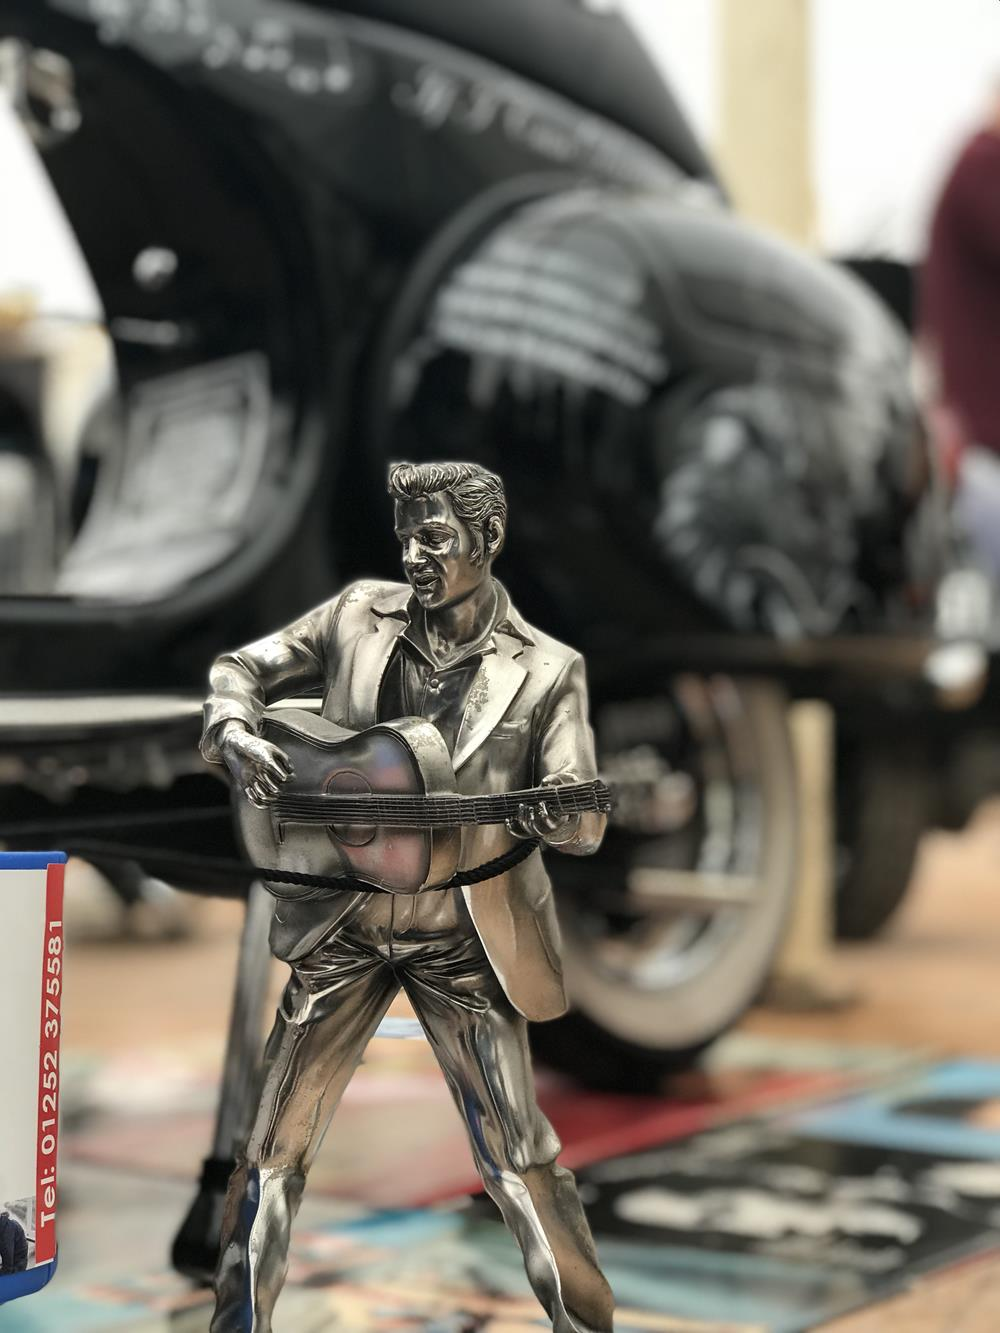 A mini statue of Elvis with Elvis-themed scooter in the background